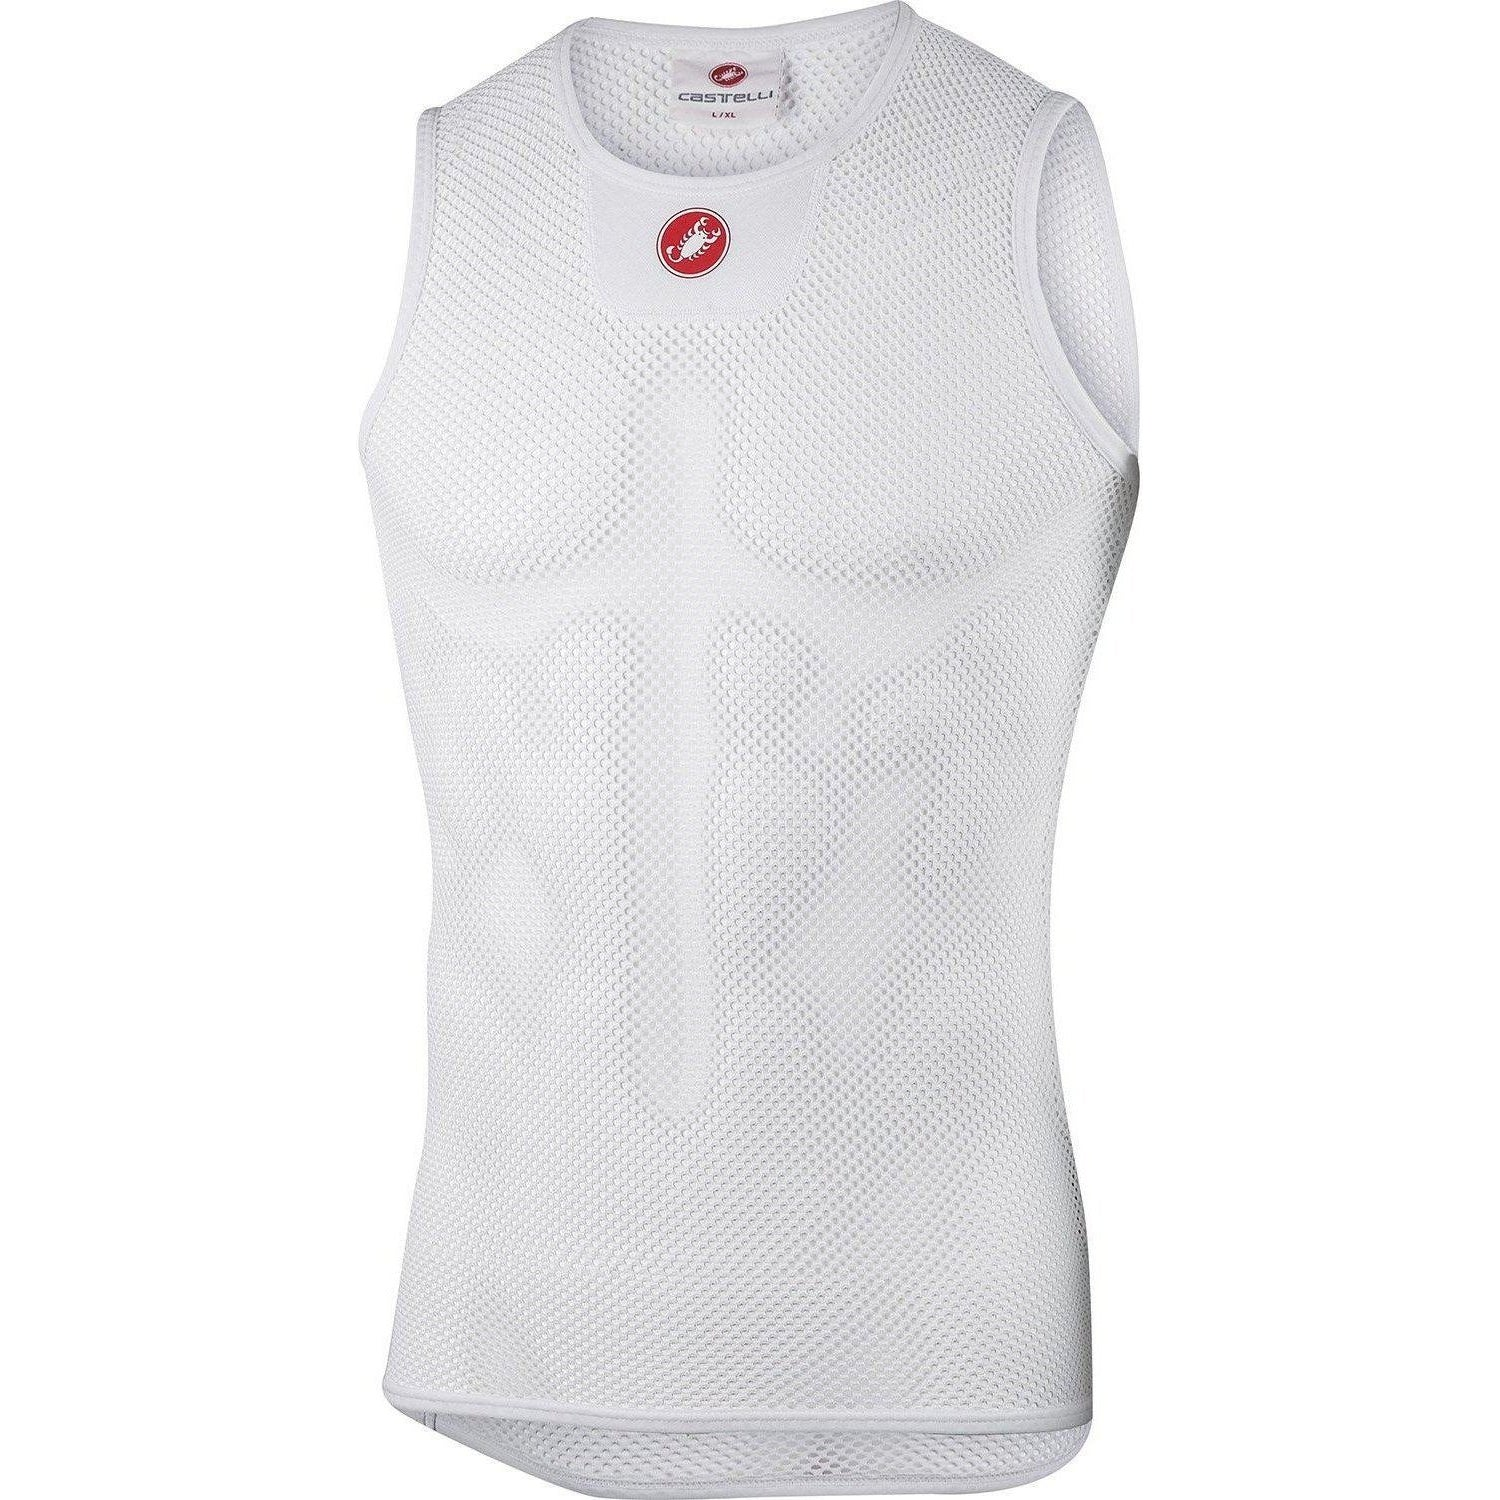 Castelli-Castelli Core Mesh 3 Sleeveless Base Layer-White-S/M-CS1702800109-saddleback-elite-performance-cycling